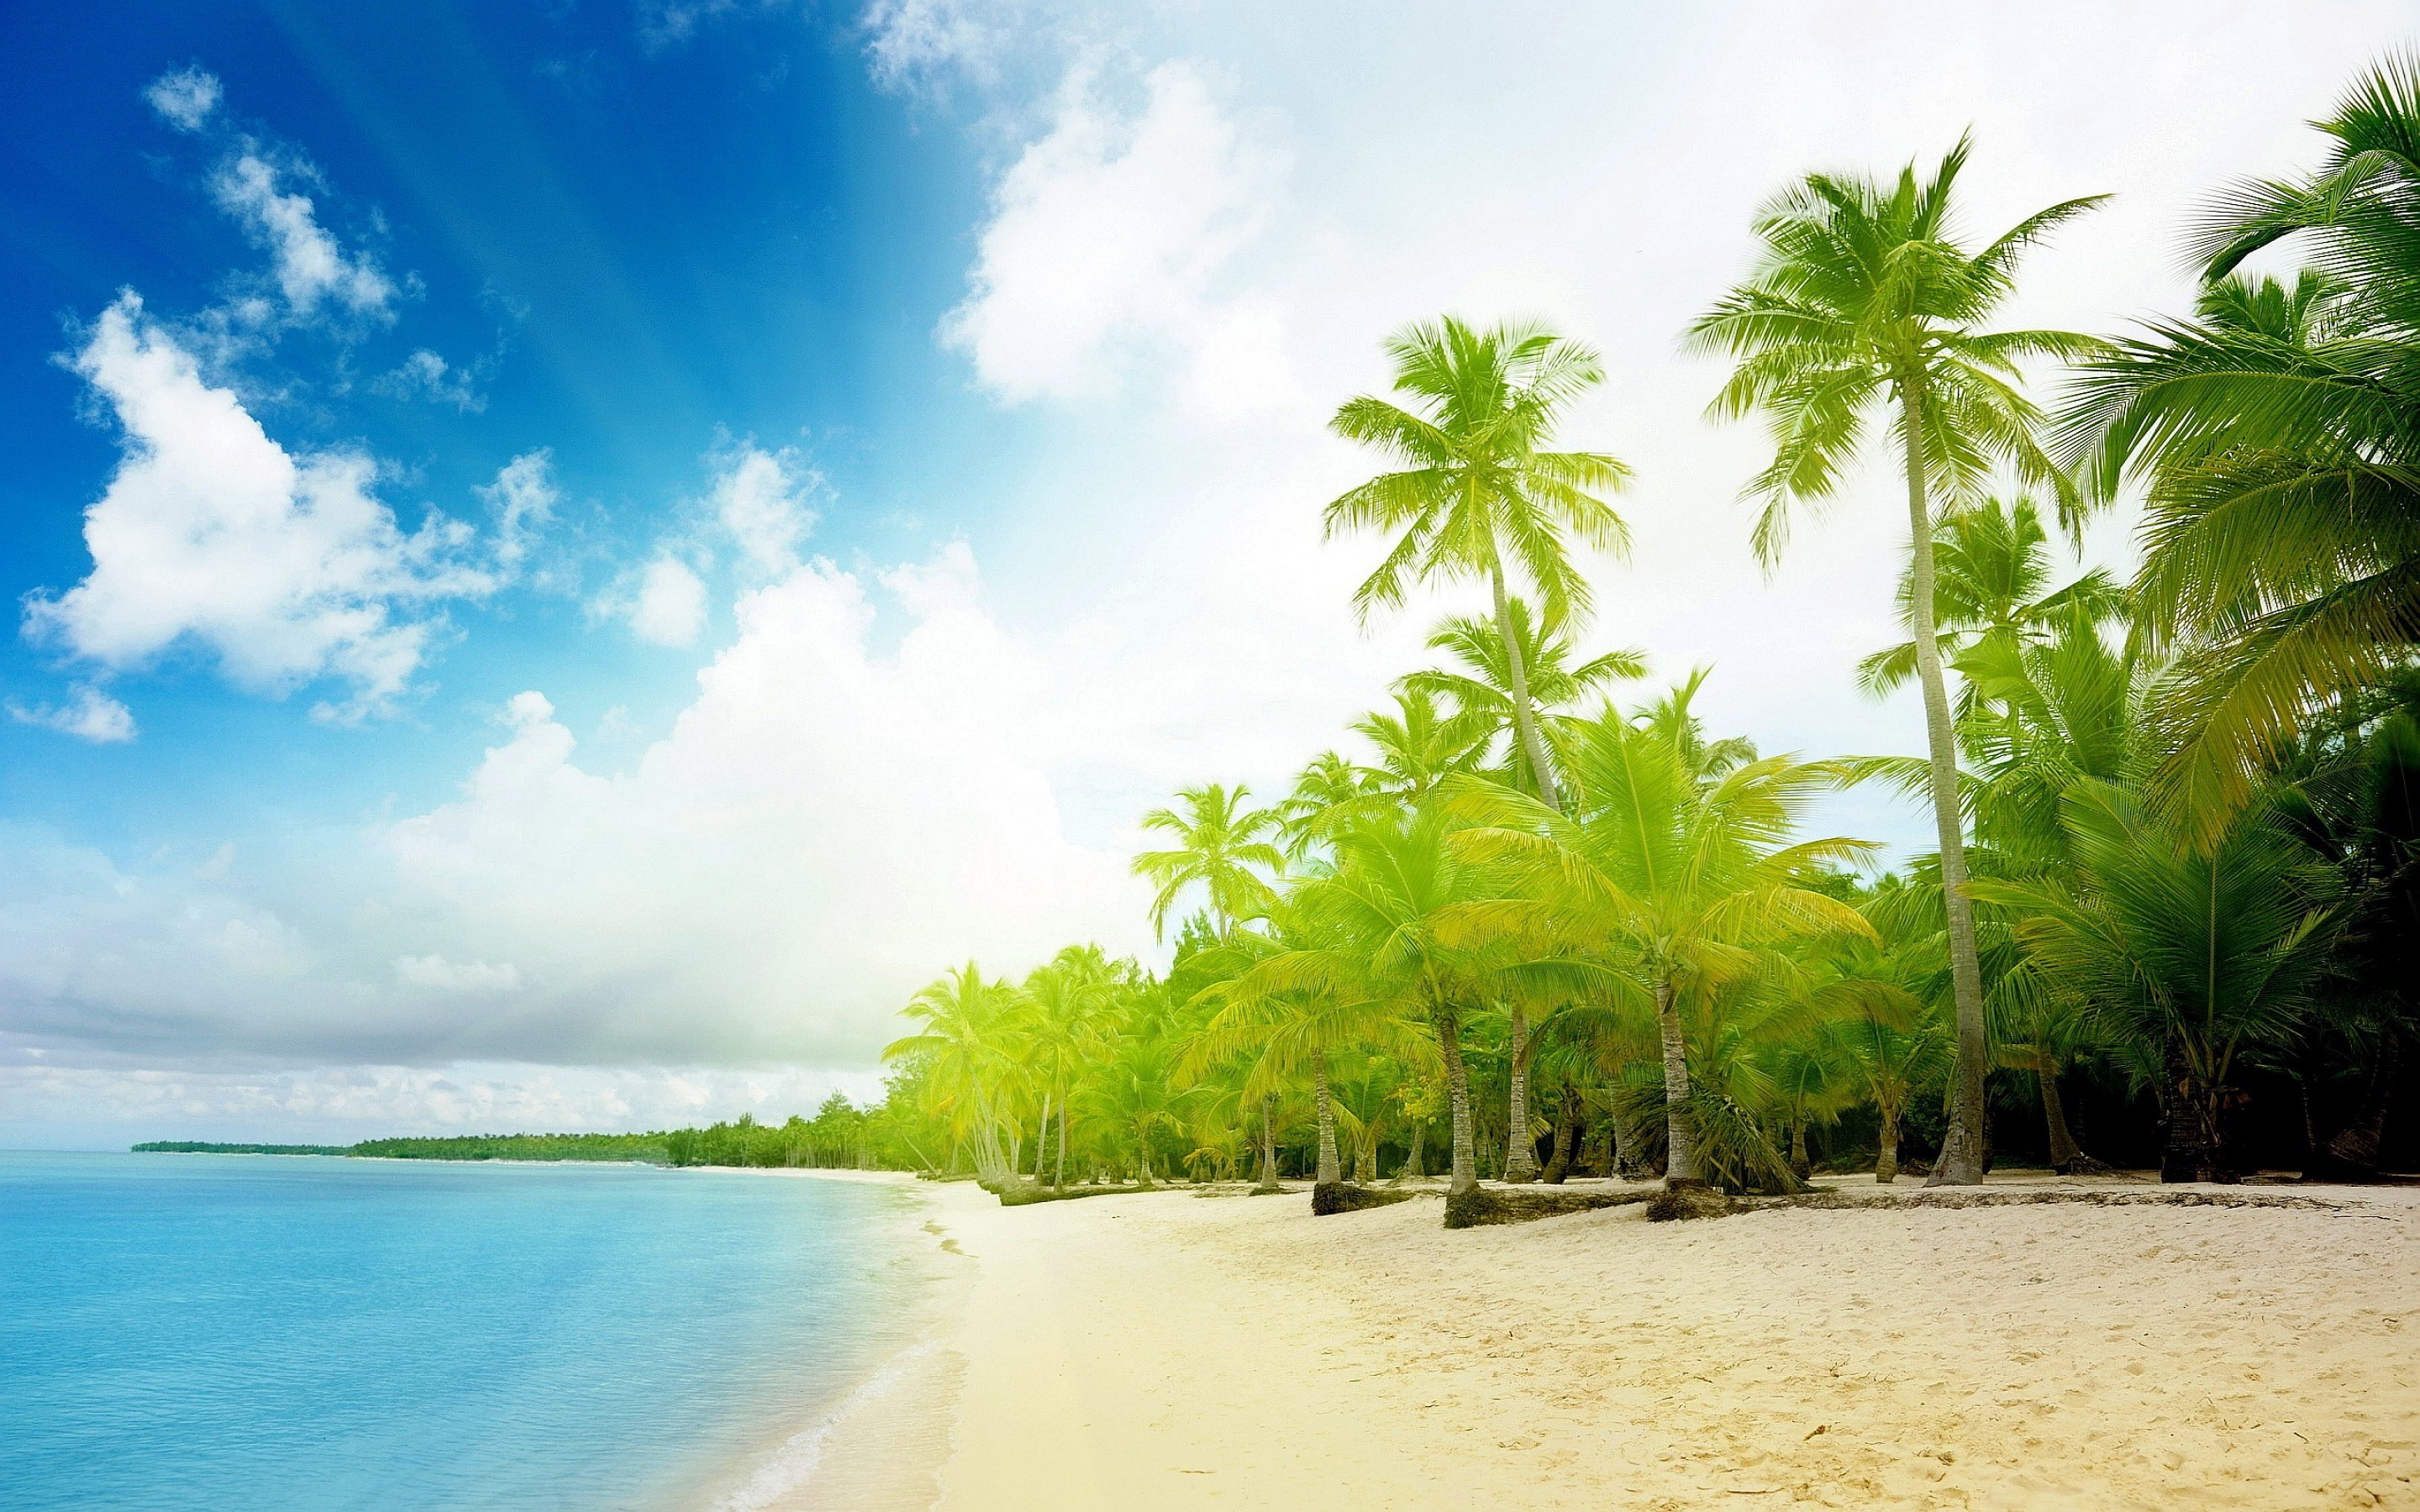 Beach Tropical Palm Trees HD Wallpaper in High Resolution at Nature .